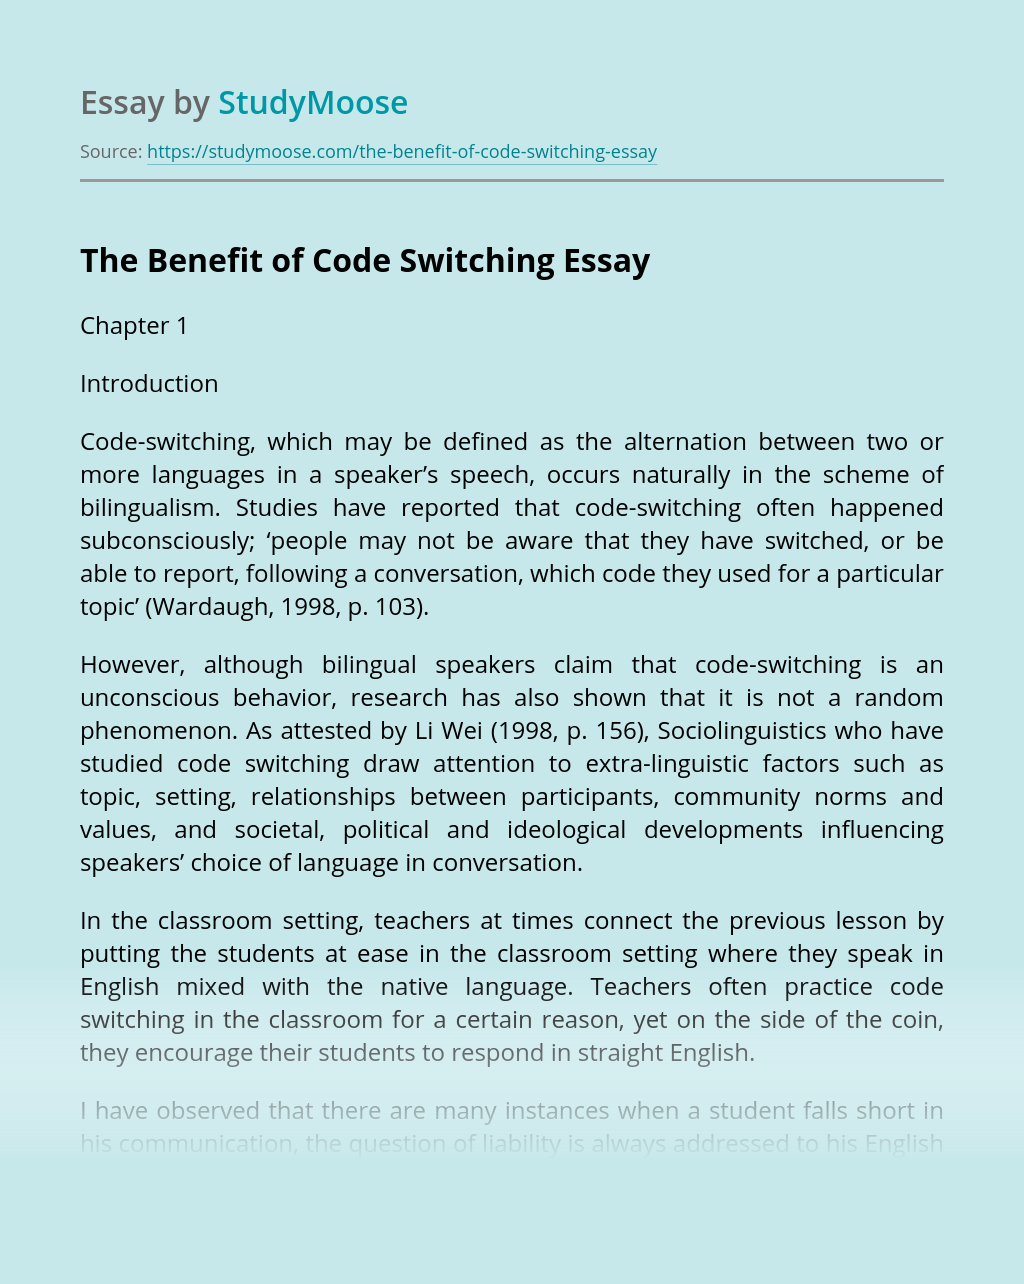 The Benefit of Code Switching